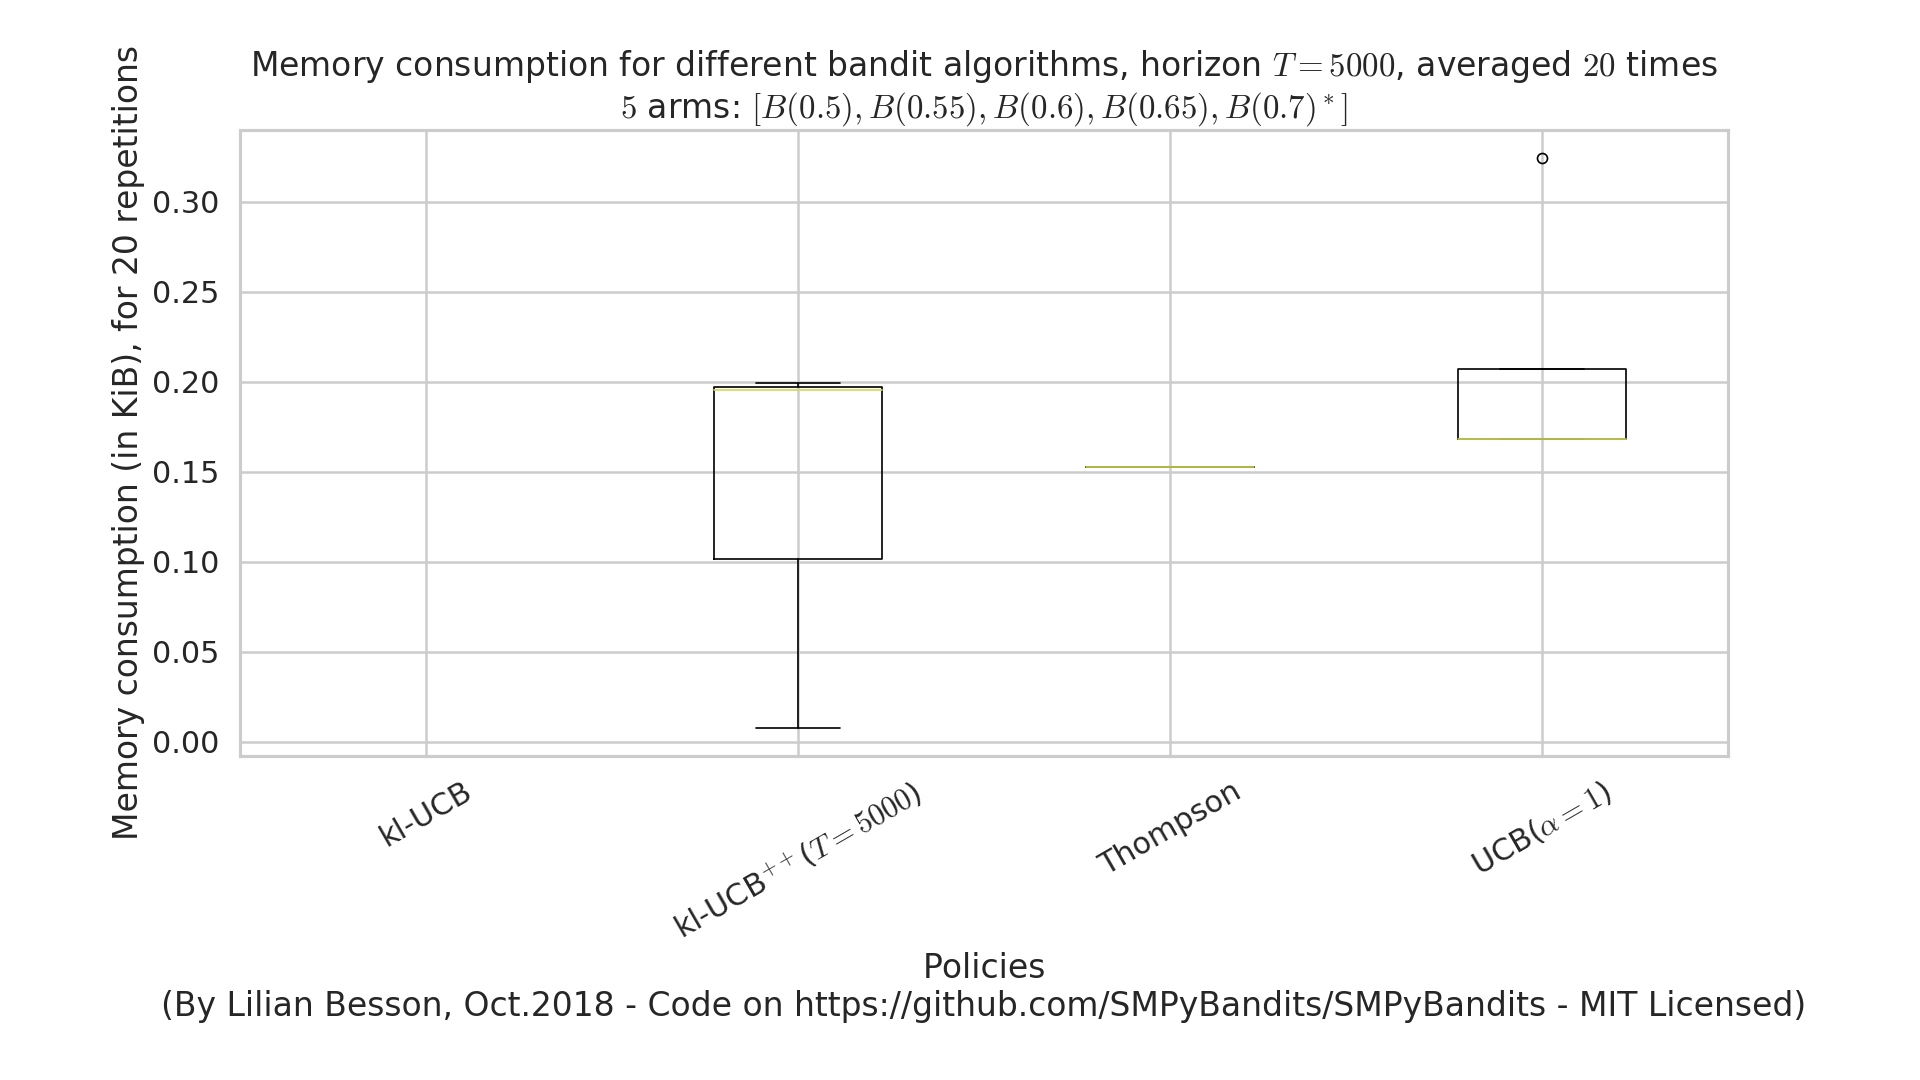 ../_images/Demo_of_automatic_memory_consumption_measure_between_algorithms.png